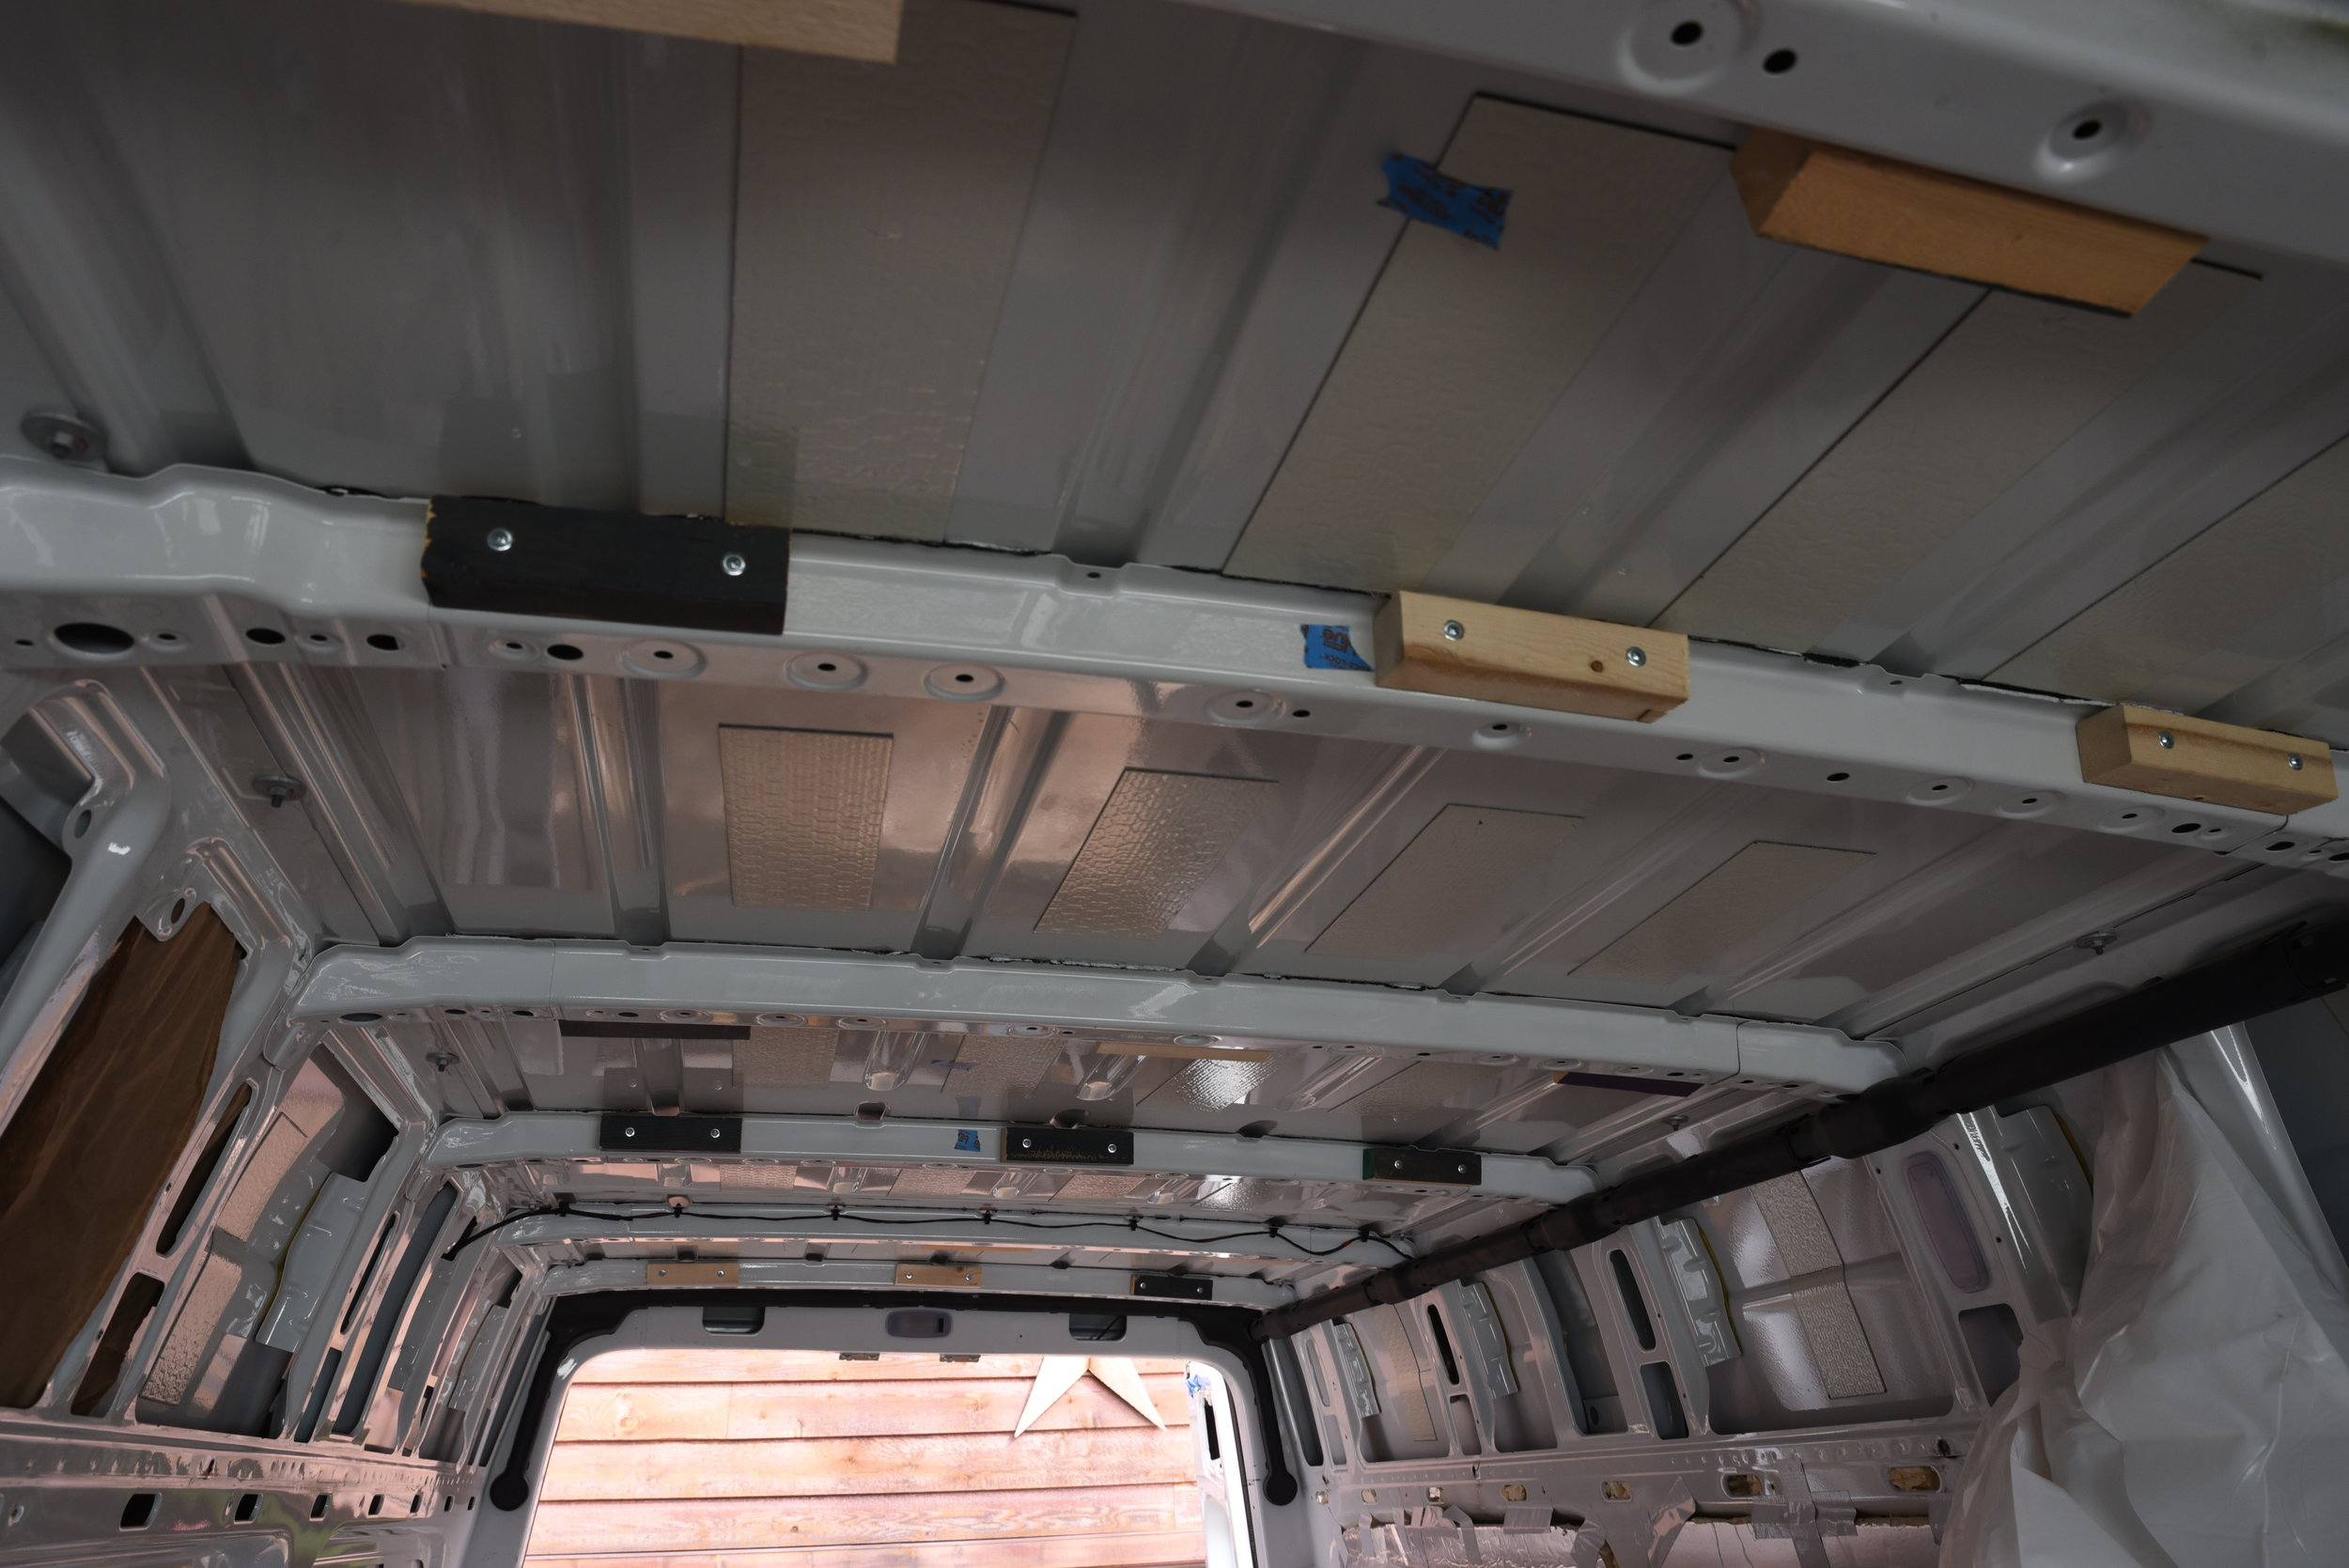 This picture shows the spacing of the studs in the ceiling.